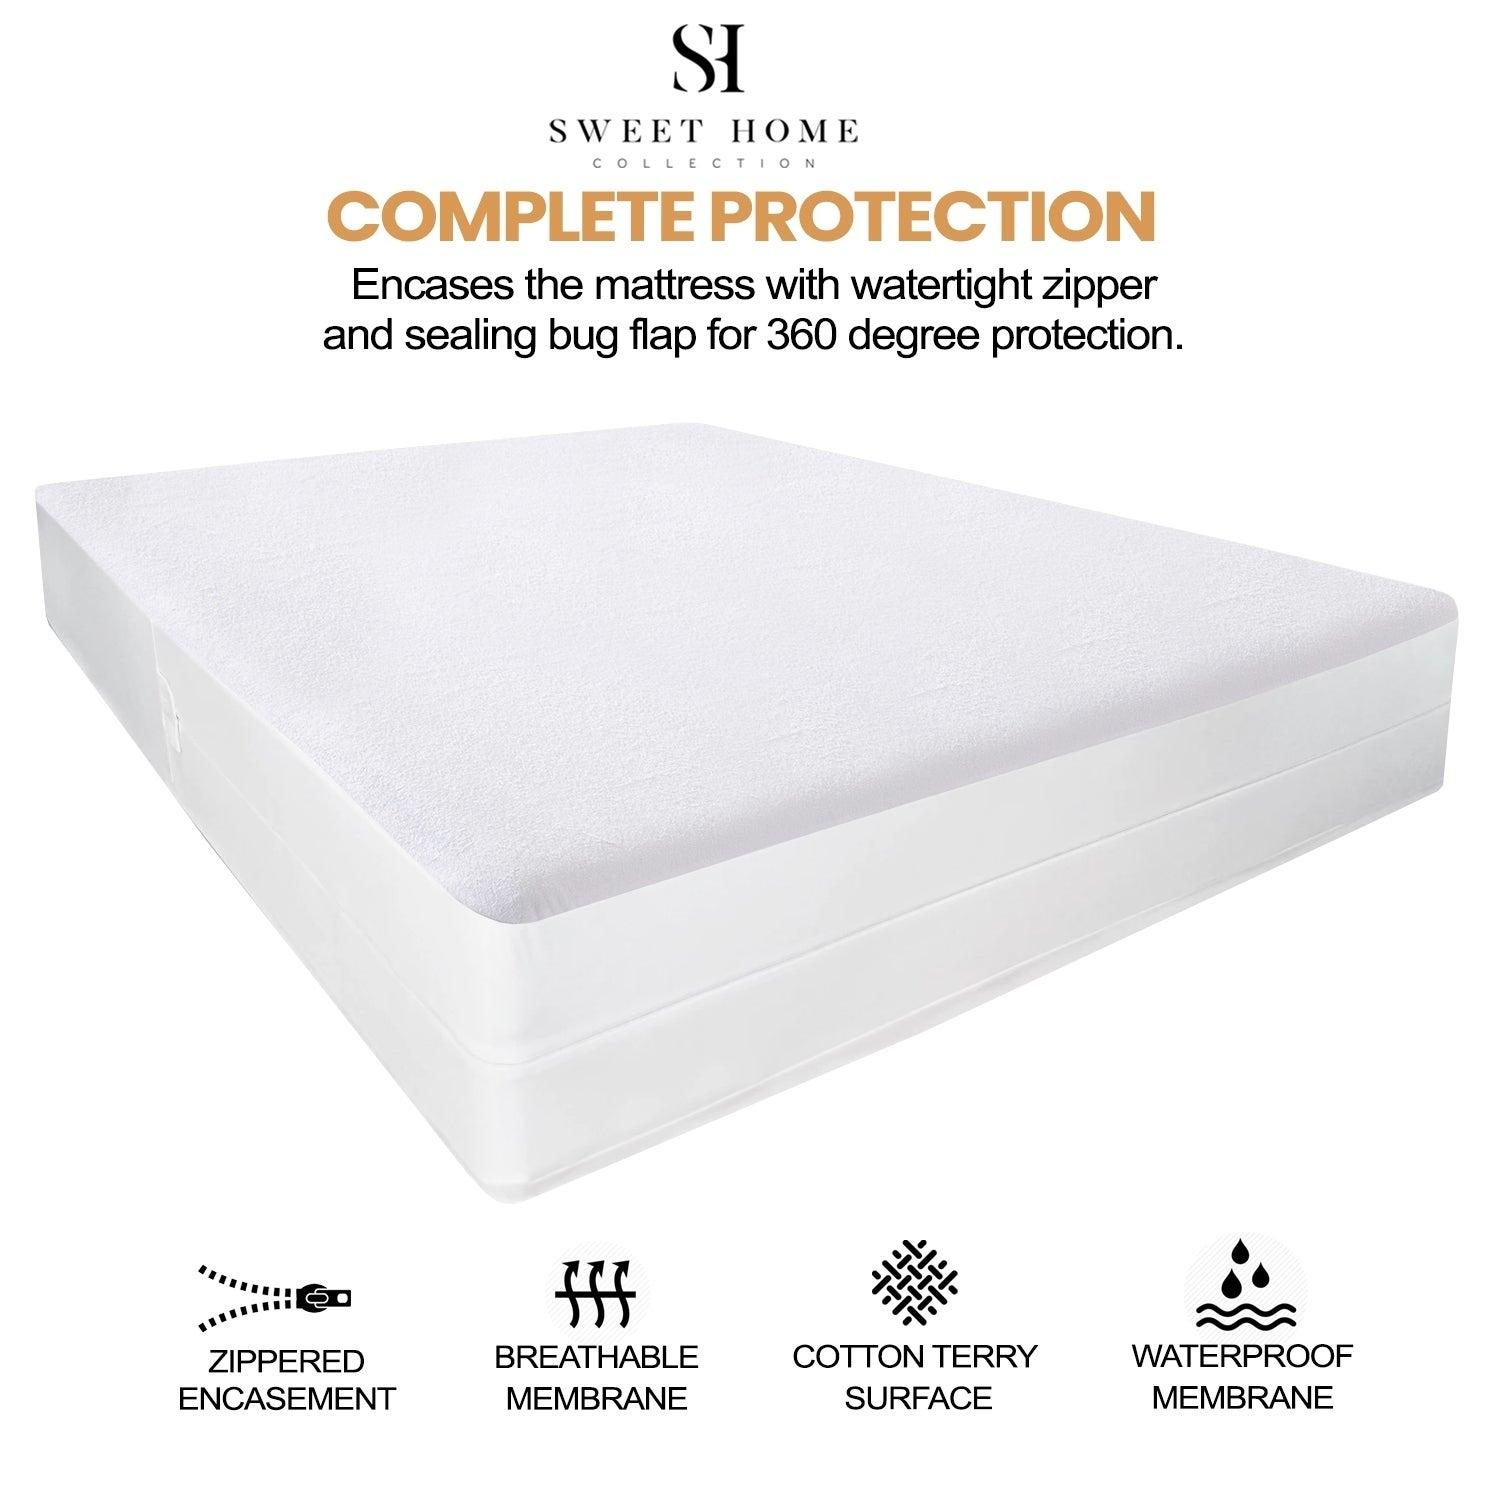 Full WOWCUTE Waterproof Mattress Protector Cotton Terry Fitted Deep Pocket Bed Bug Proof Vinyl Free